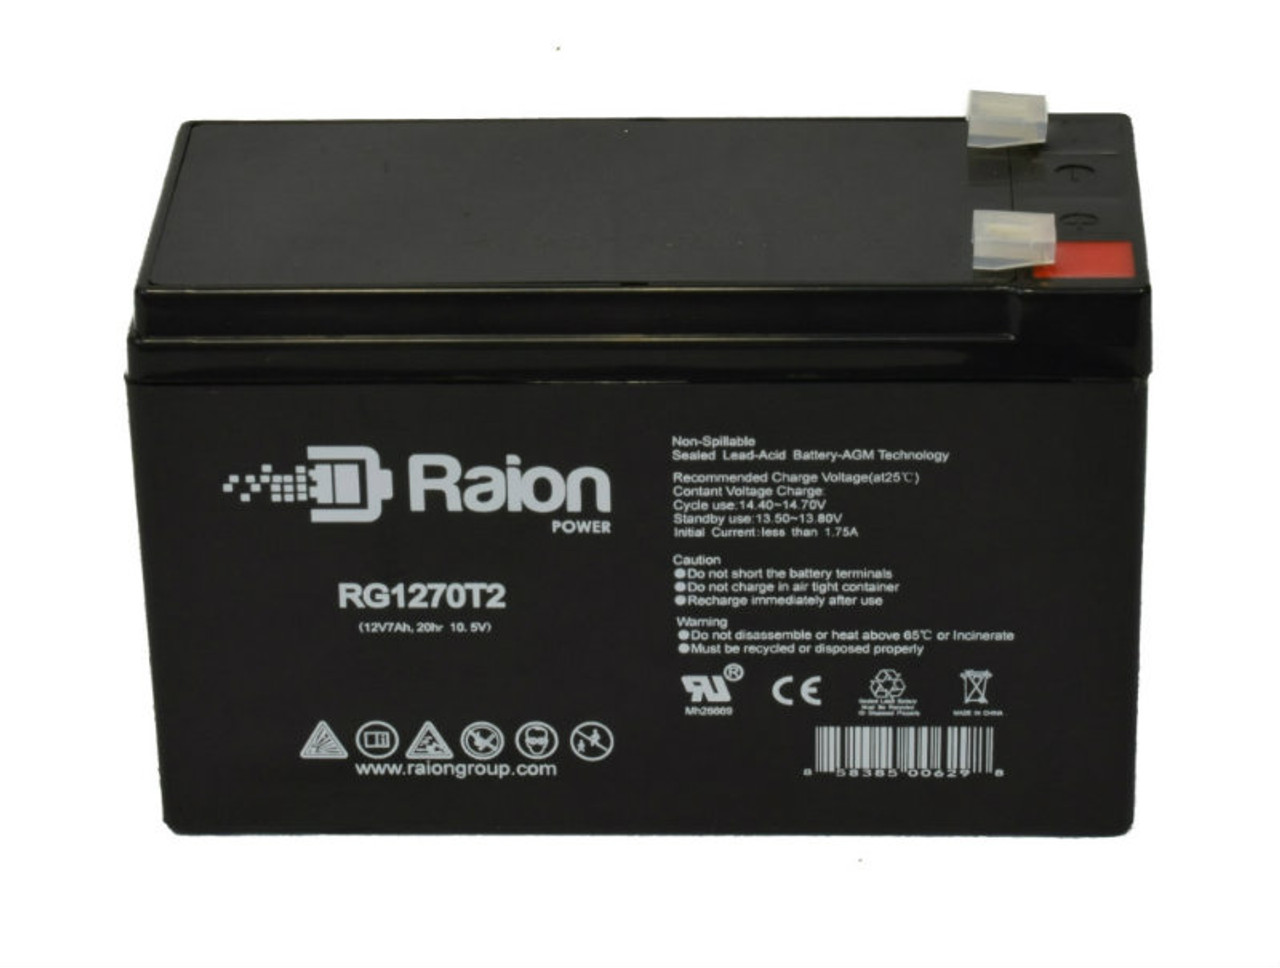 Raion Power 12V 7Ah SLA Battery With T1 Terminals For Consent Battery GS126